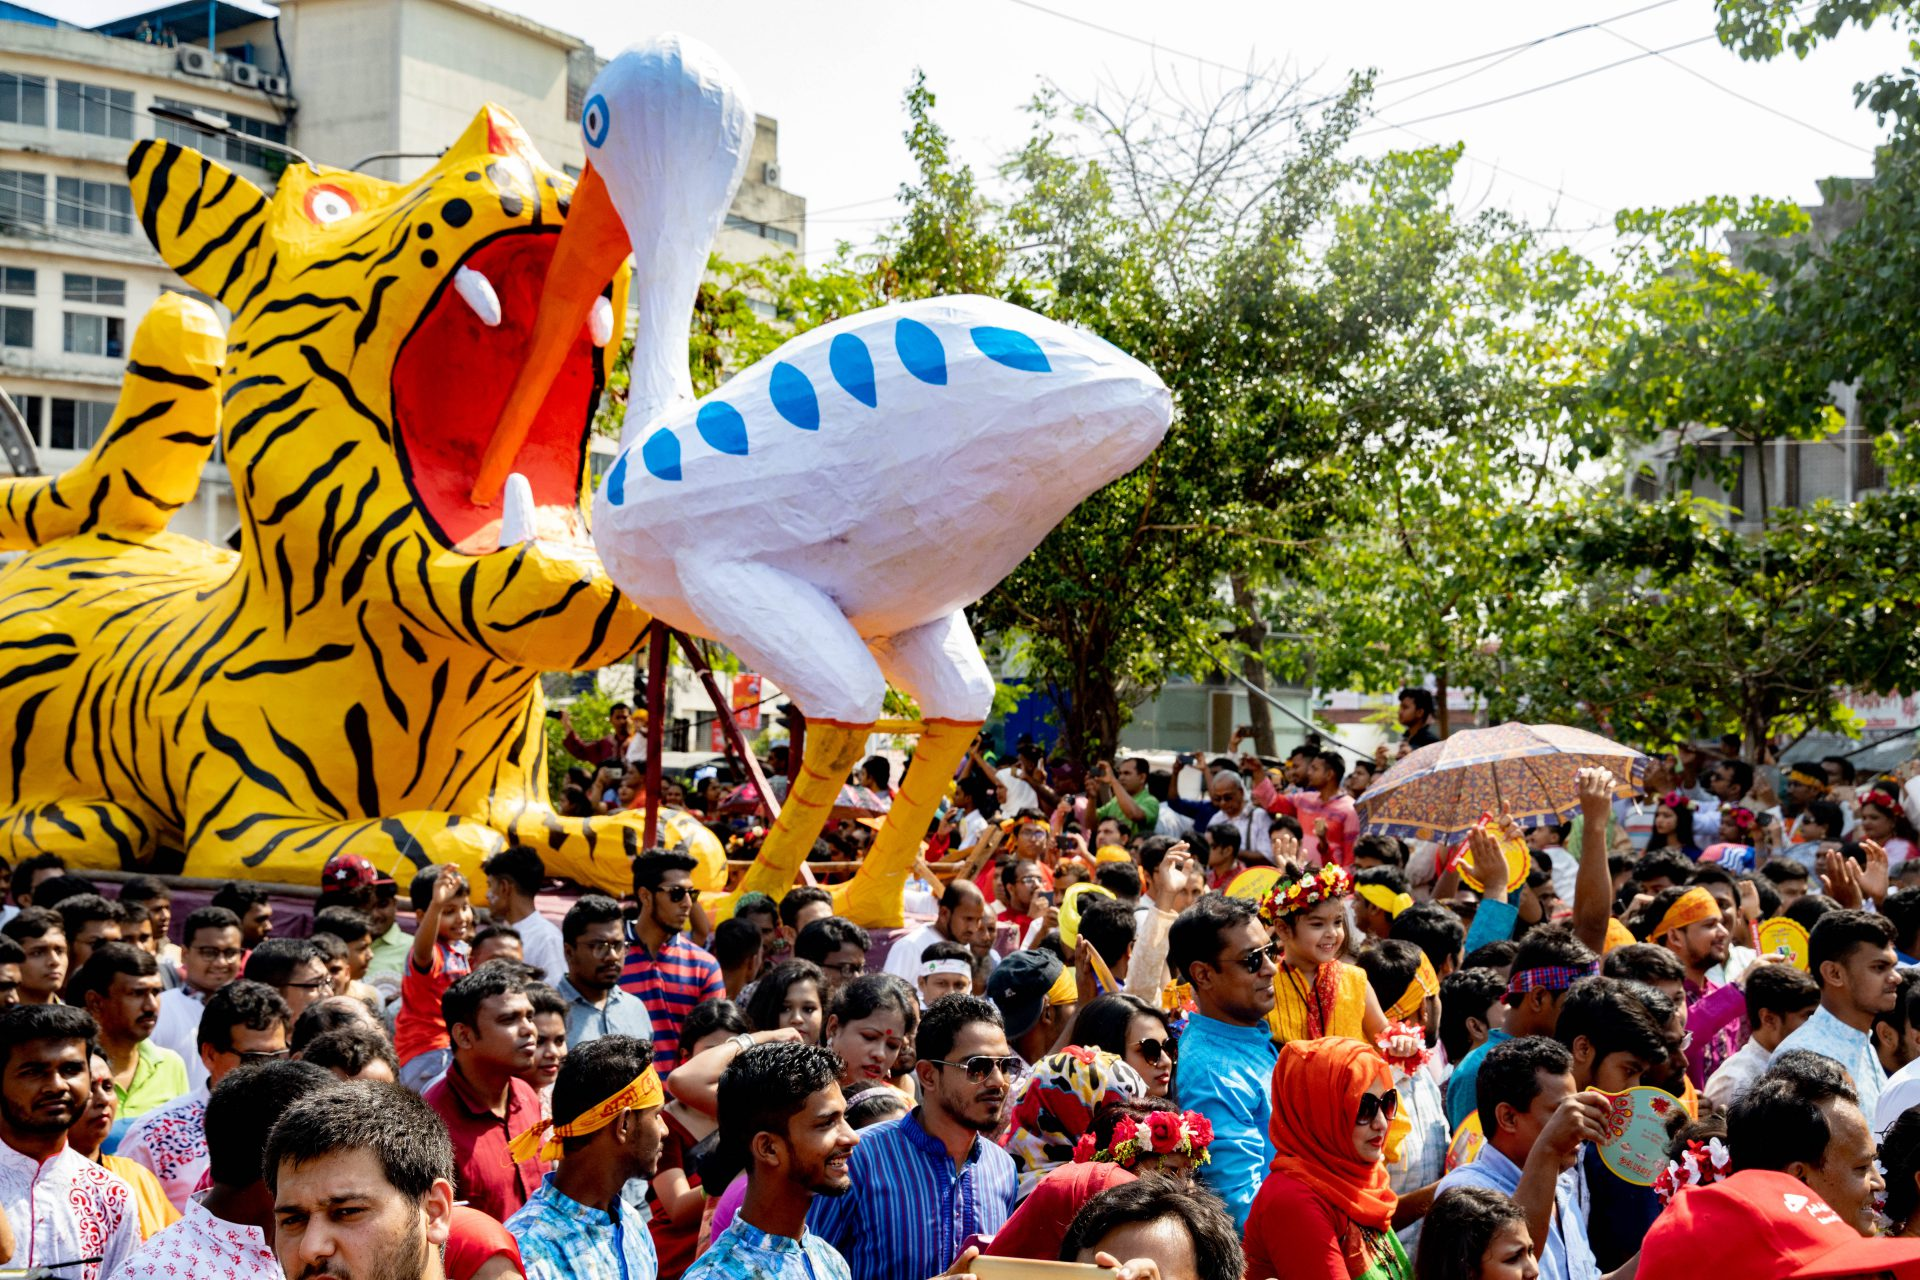 WHY YOU SHOULD EXPERIENCE THE BENGALI NEW YEAR IN BANGLADESH